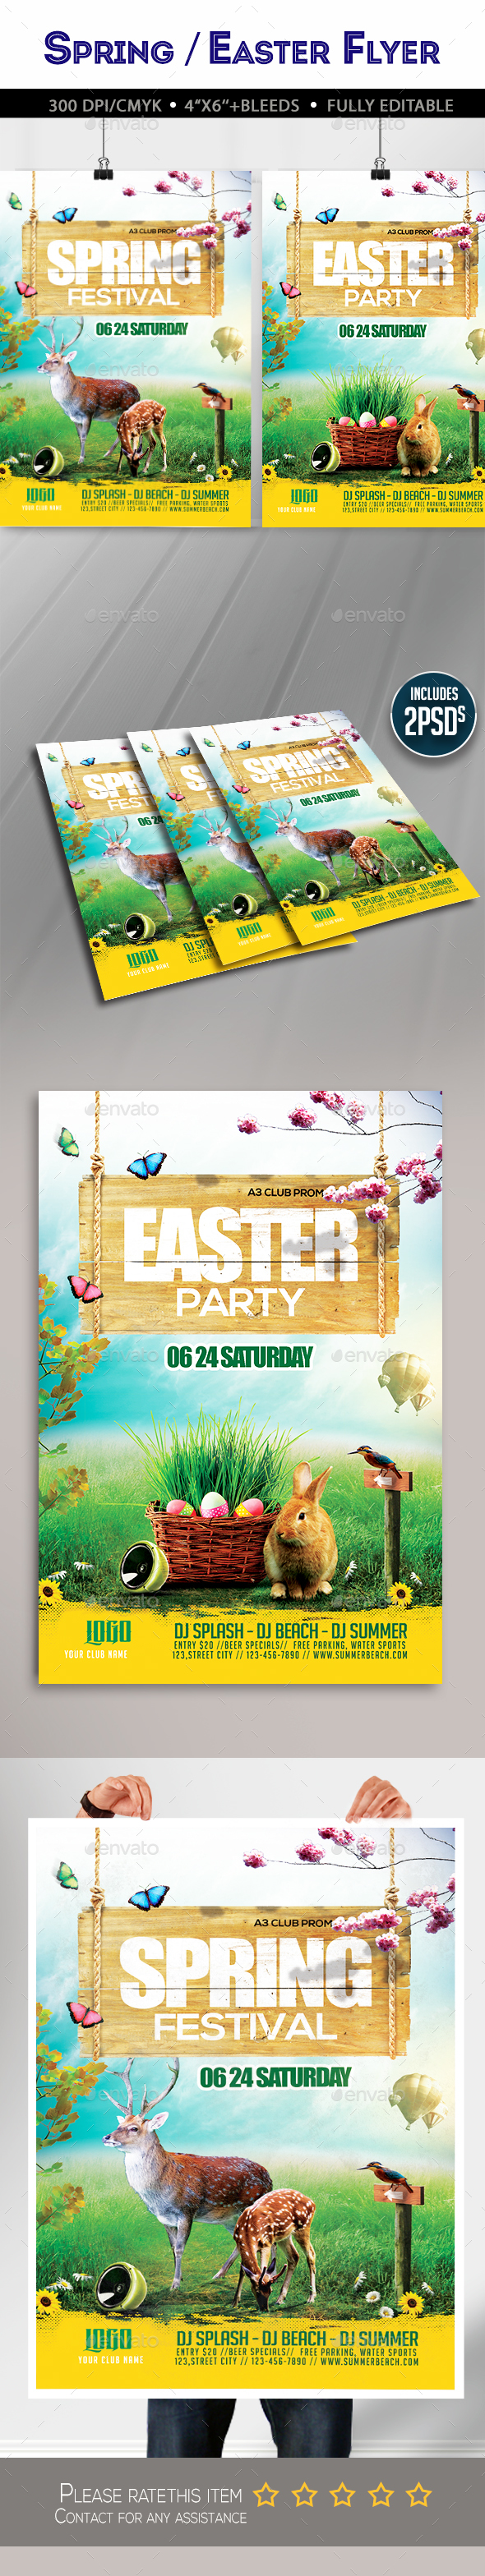 Spring / Easter Flyer - Clubs & Parties Events